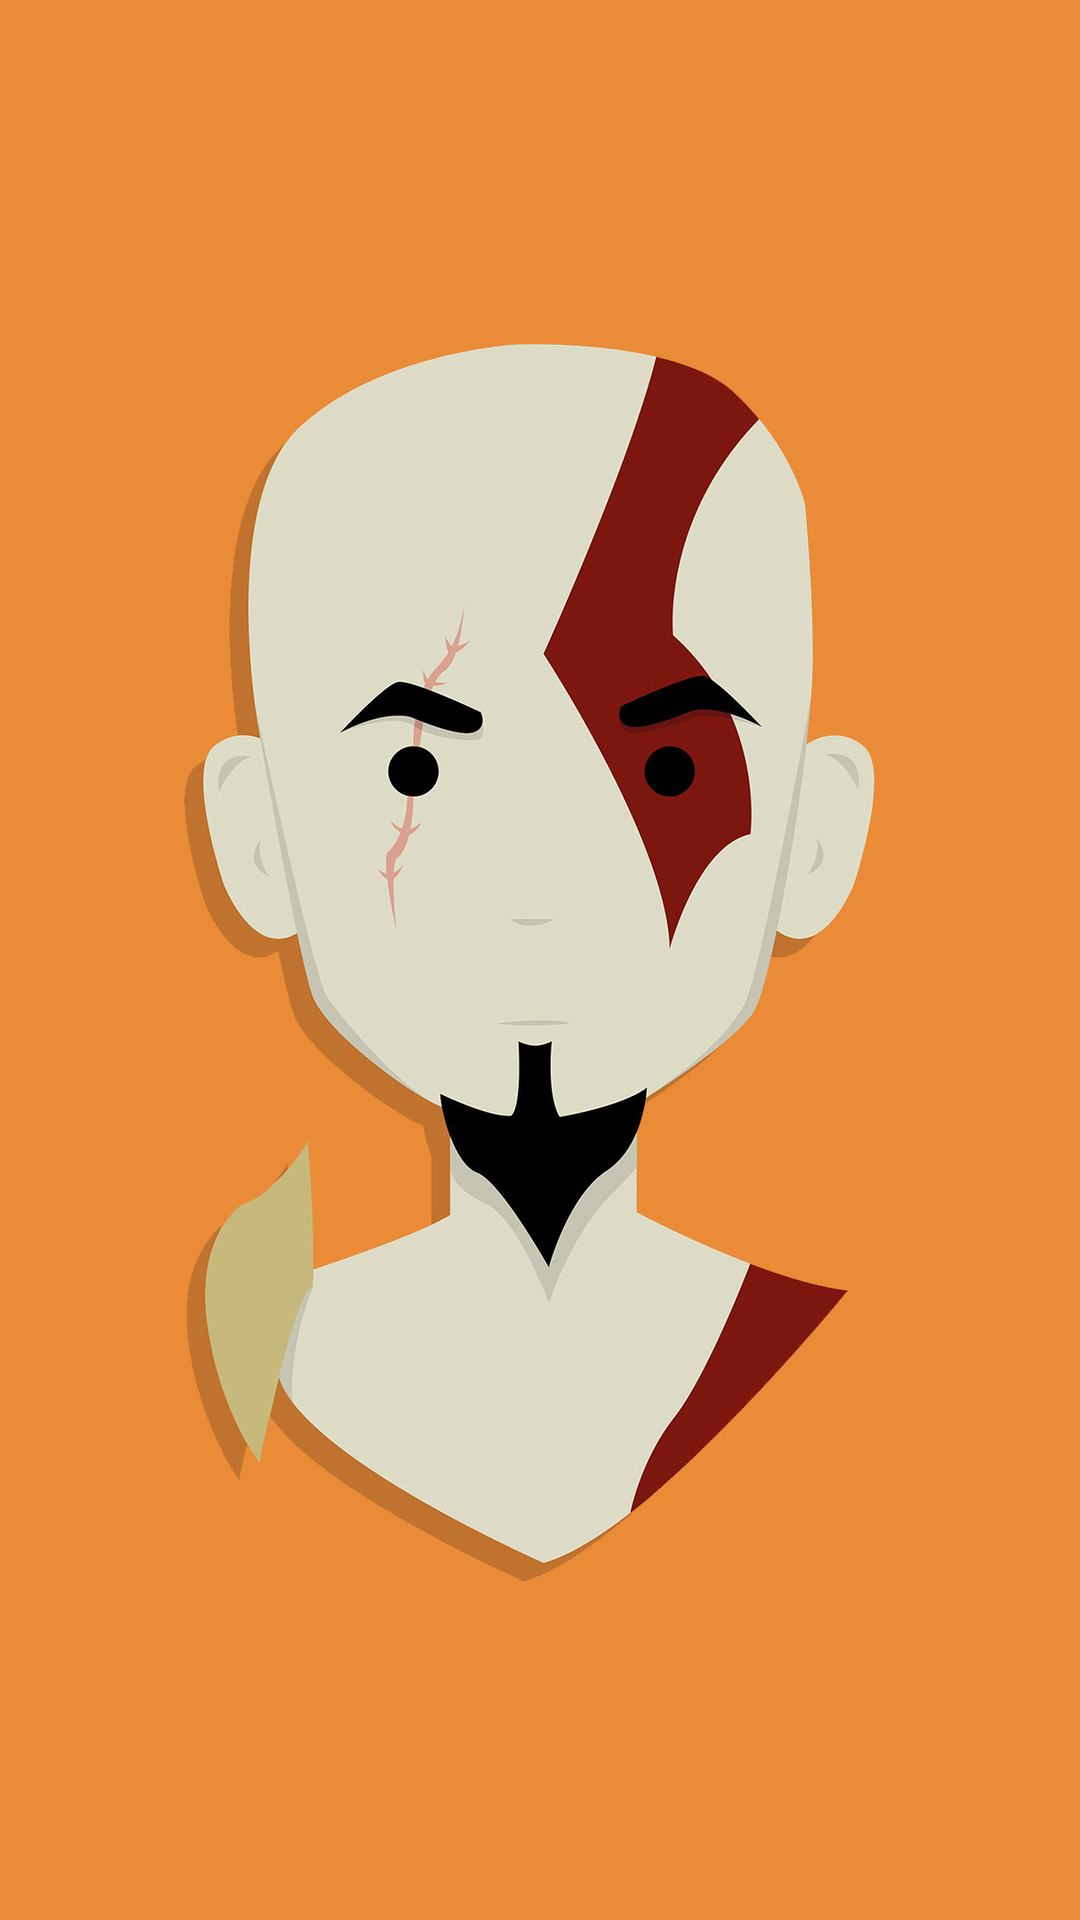 kratos-god-of-war-minimalist-4k-pv.jpg